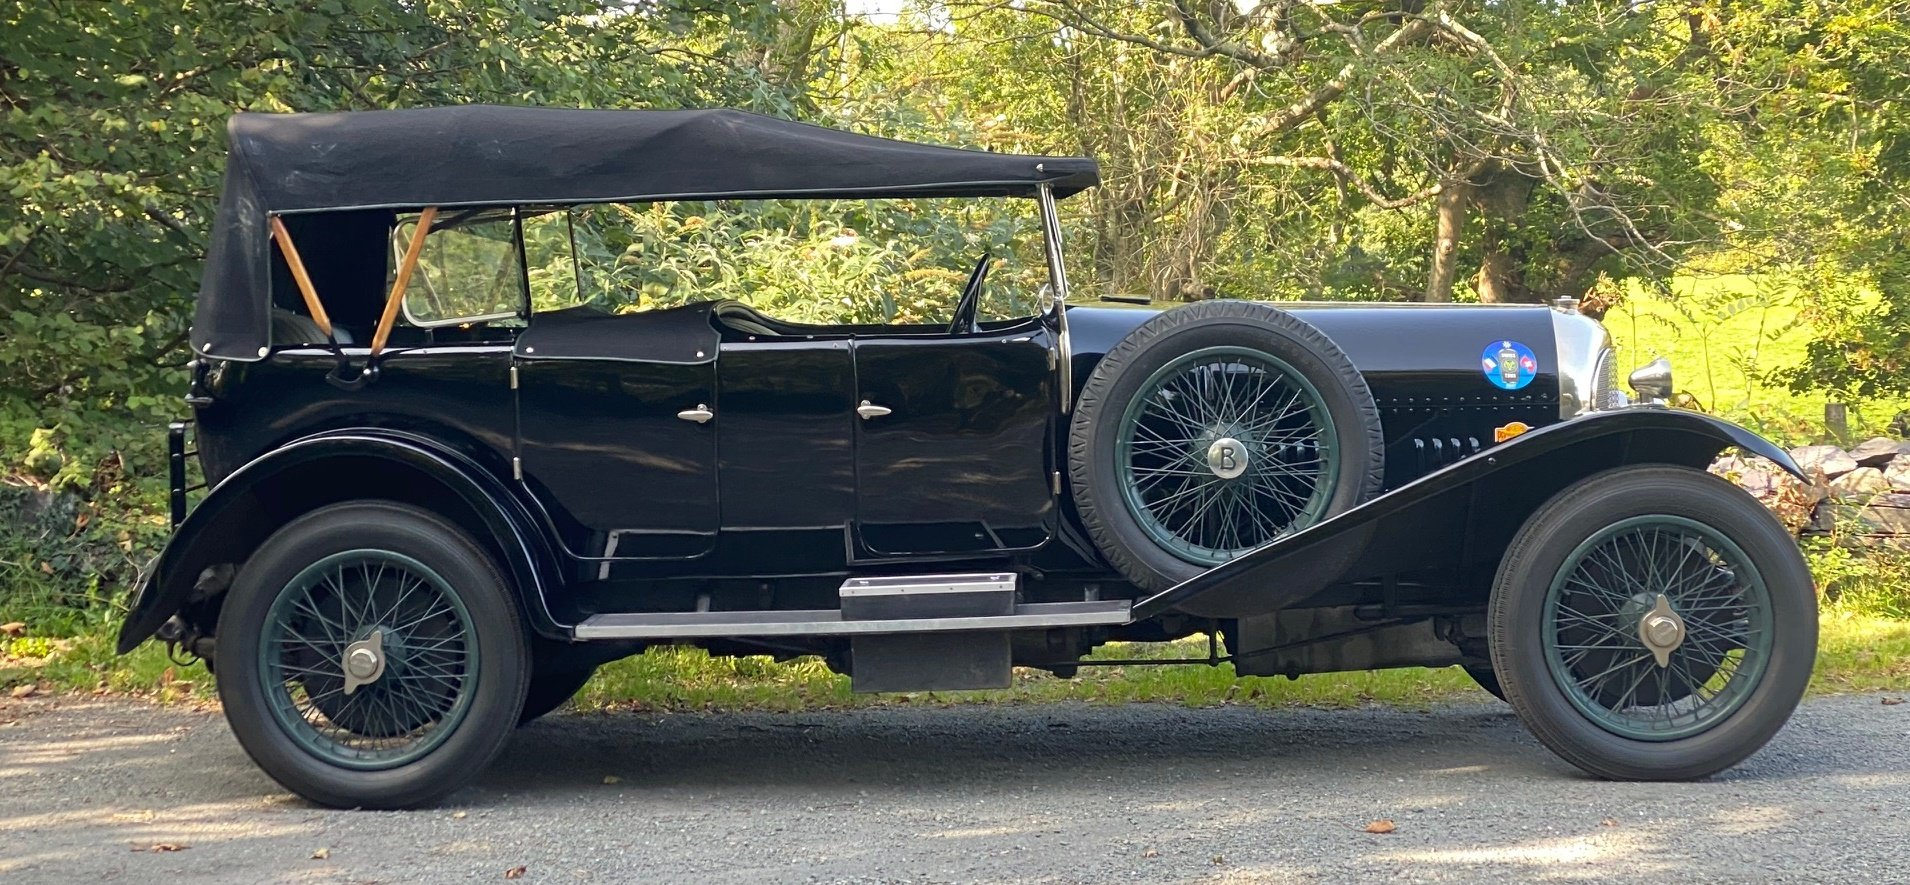 1926 Bentley 3 Ltr Gurney Nutting Open Tourer PH1465 For Sale (picture 6 of 6)